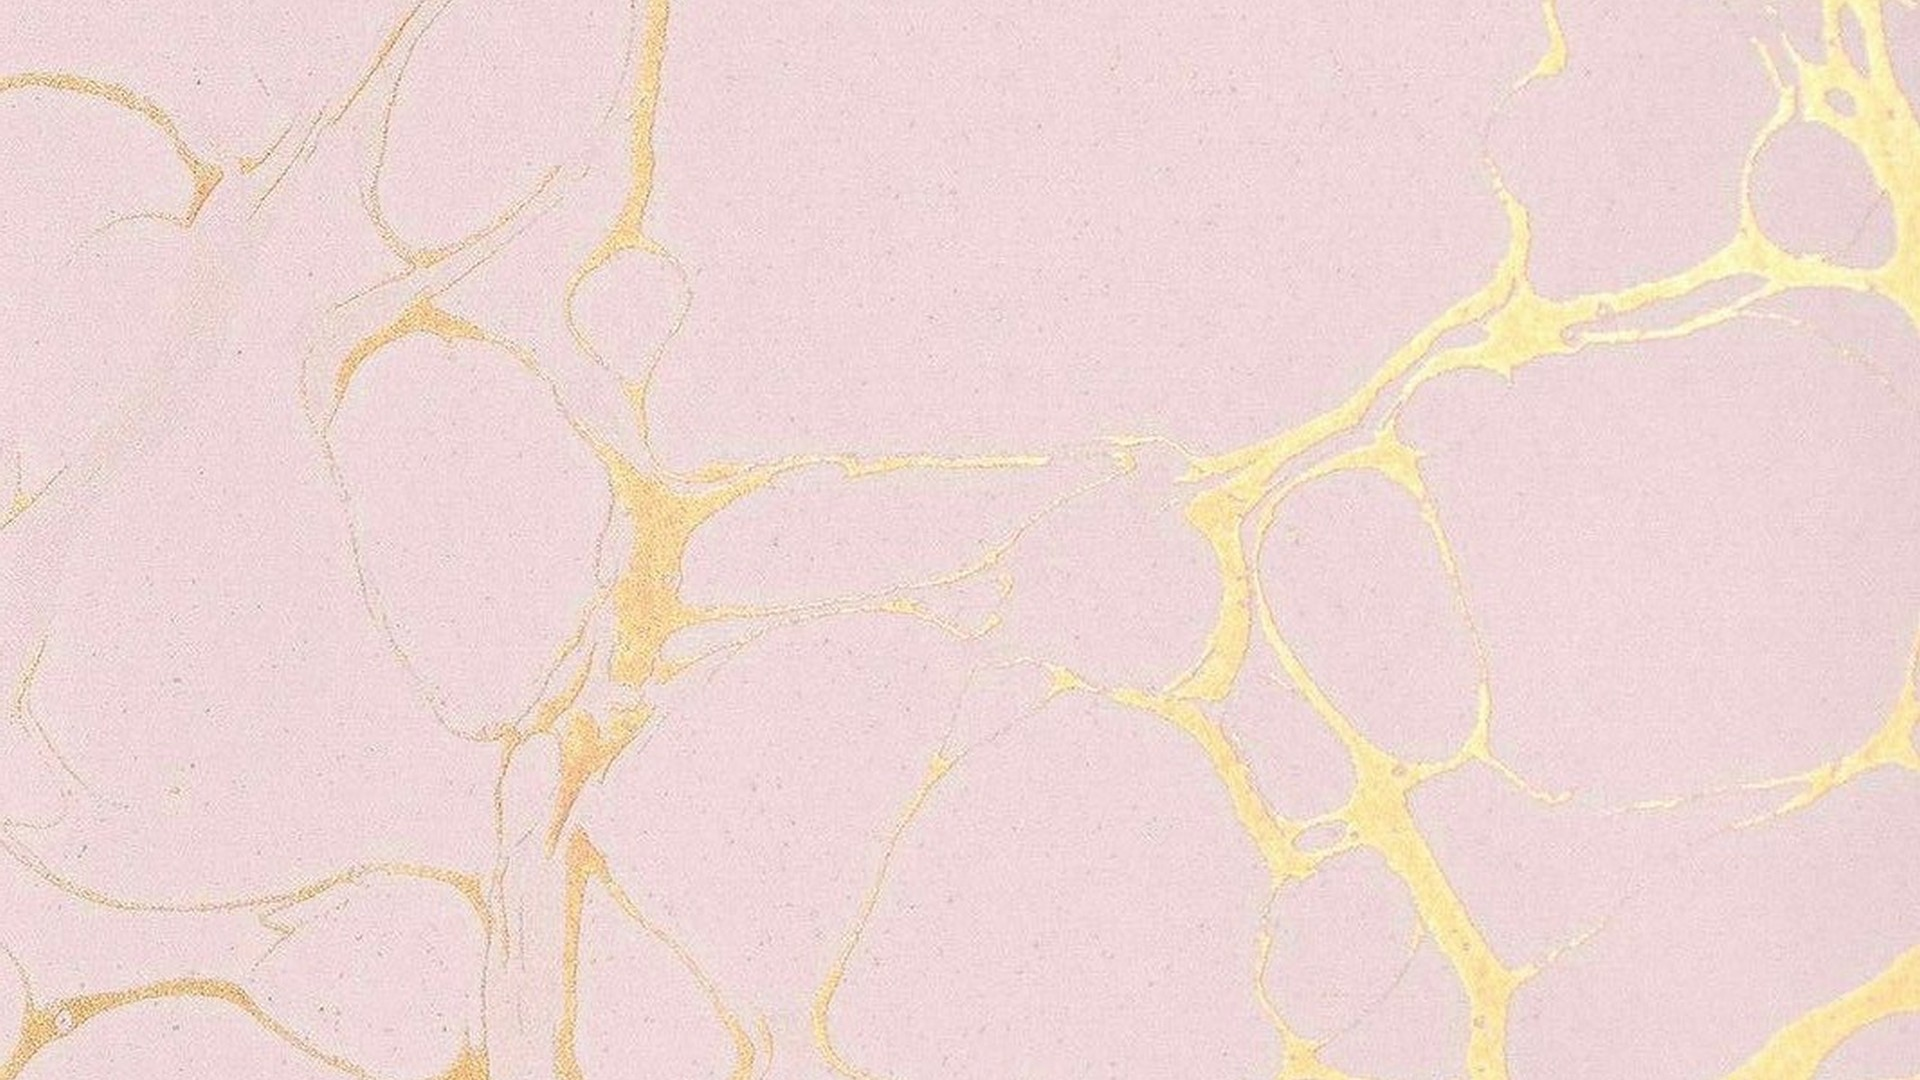 Gold Marble Wallpaper Desktop